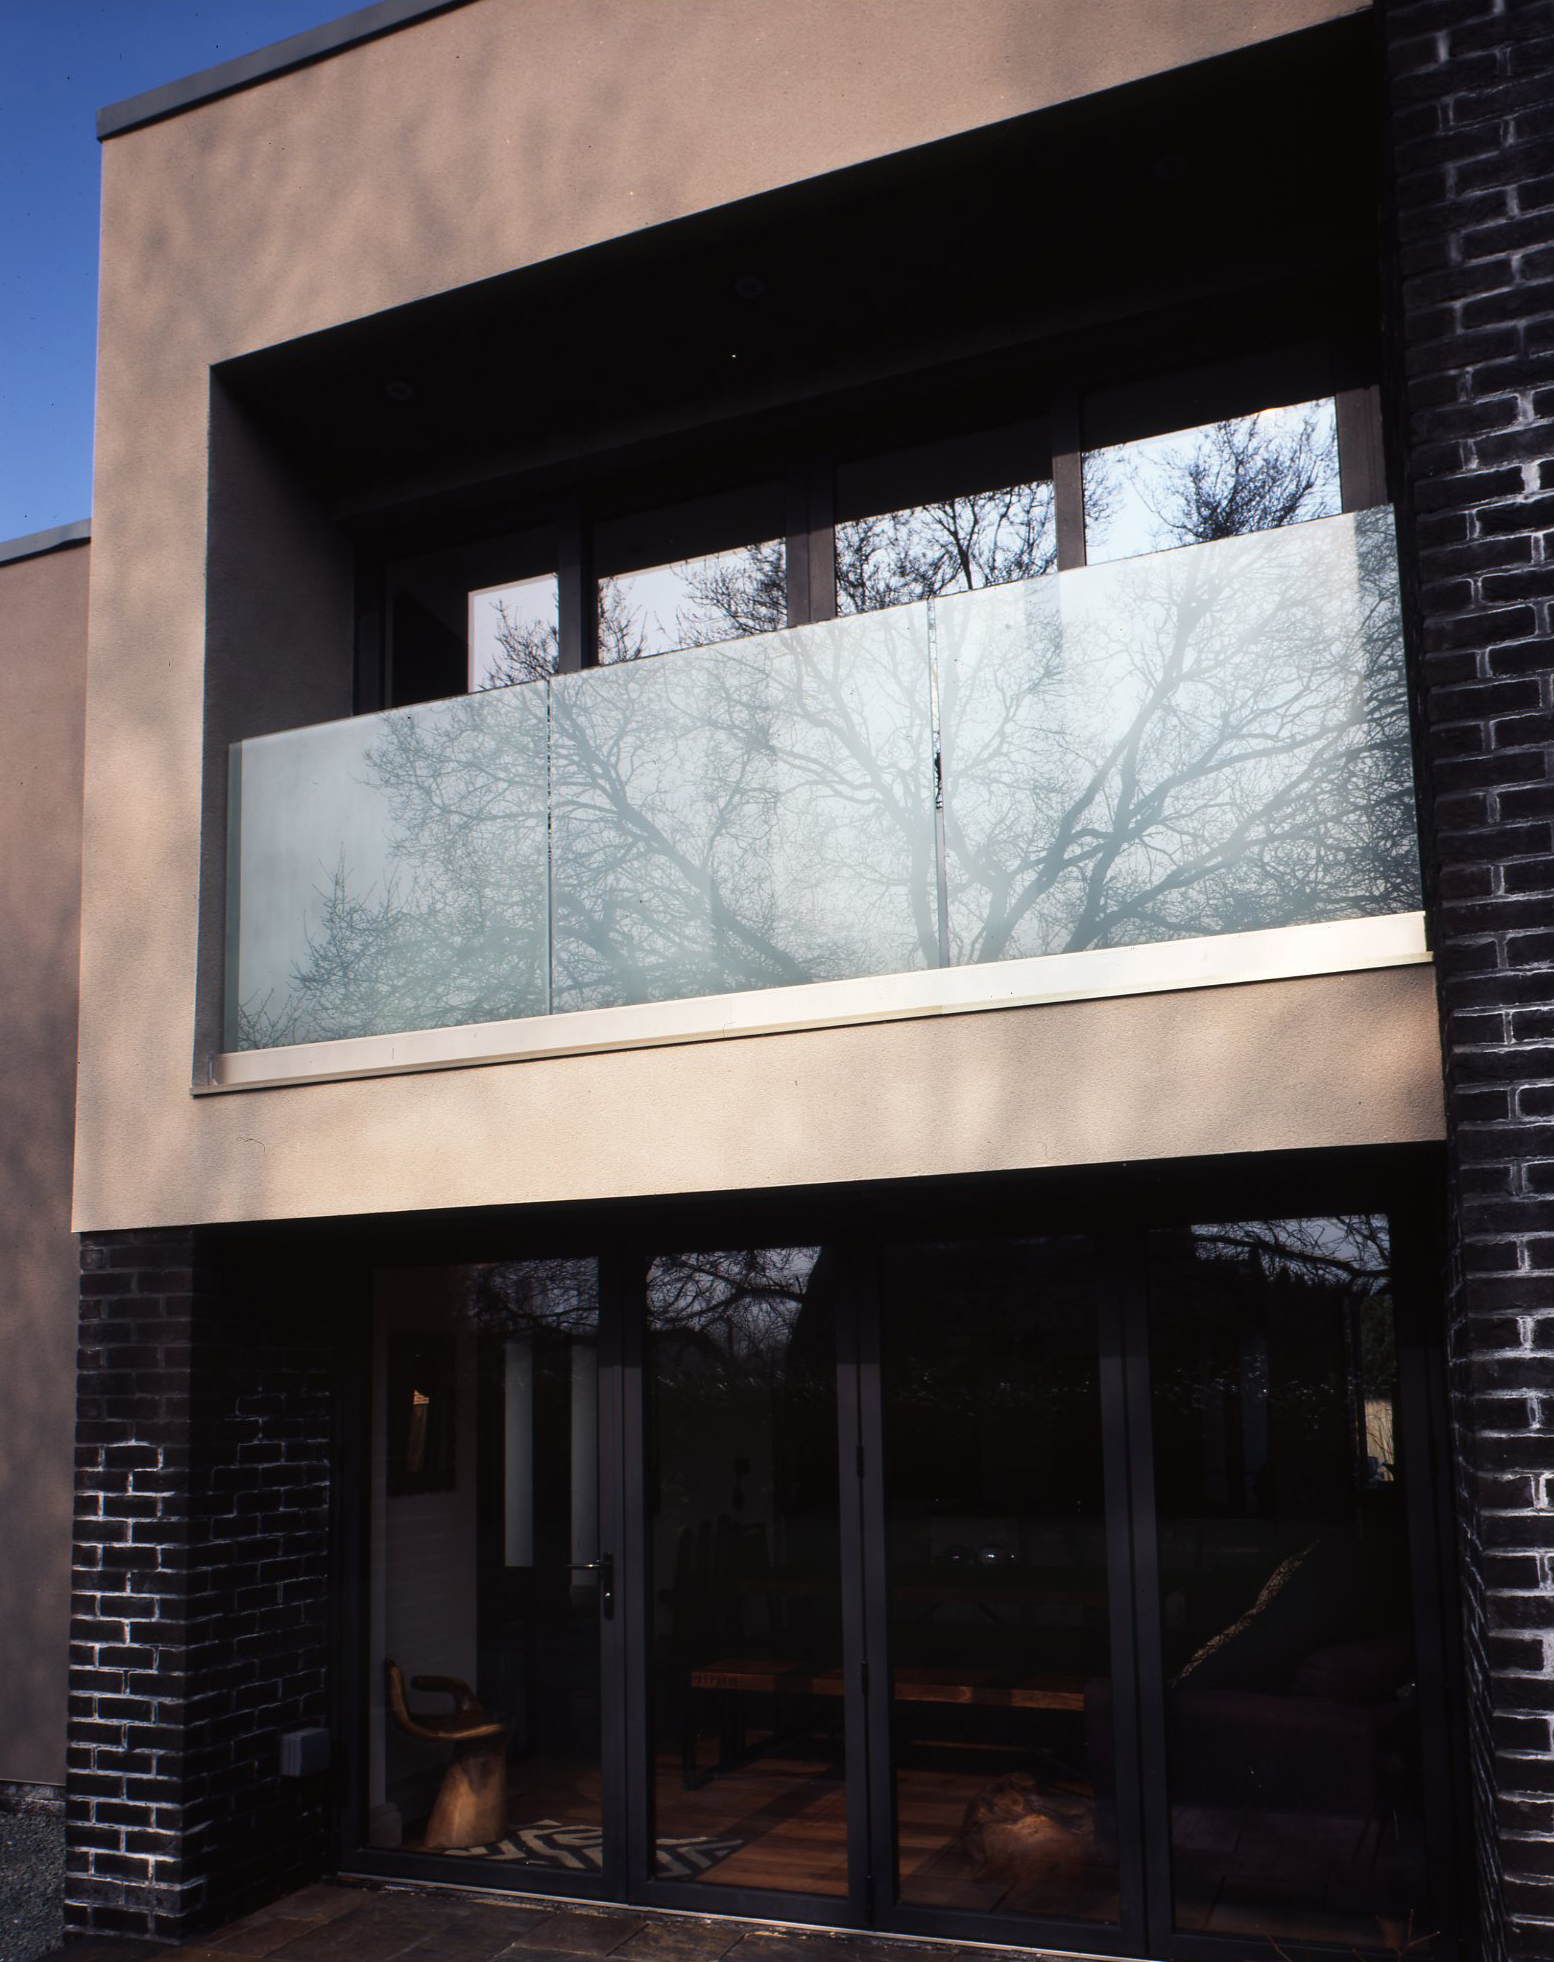 Balcony with Reflection John Wratten Architects (section of 54 transparency).